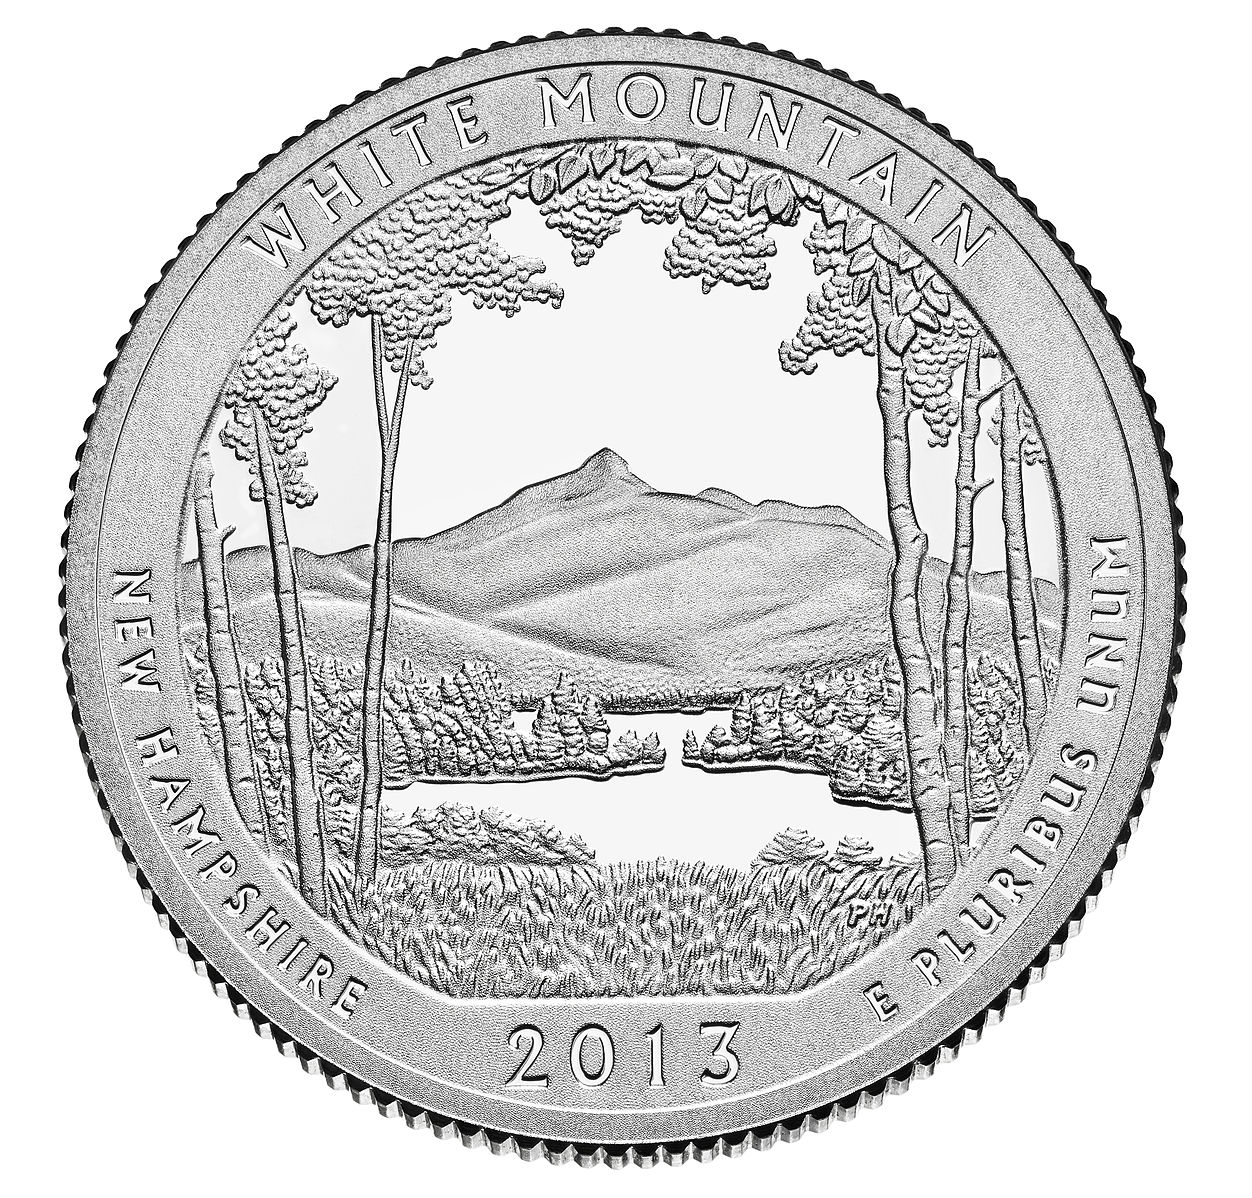 US 2013 New Hampshire White mountain National Forest Quarter $ Coin GP Bracelet